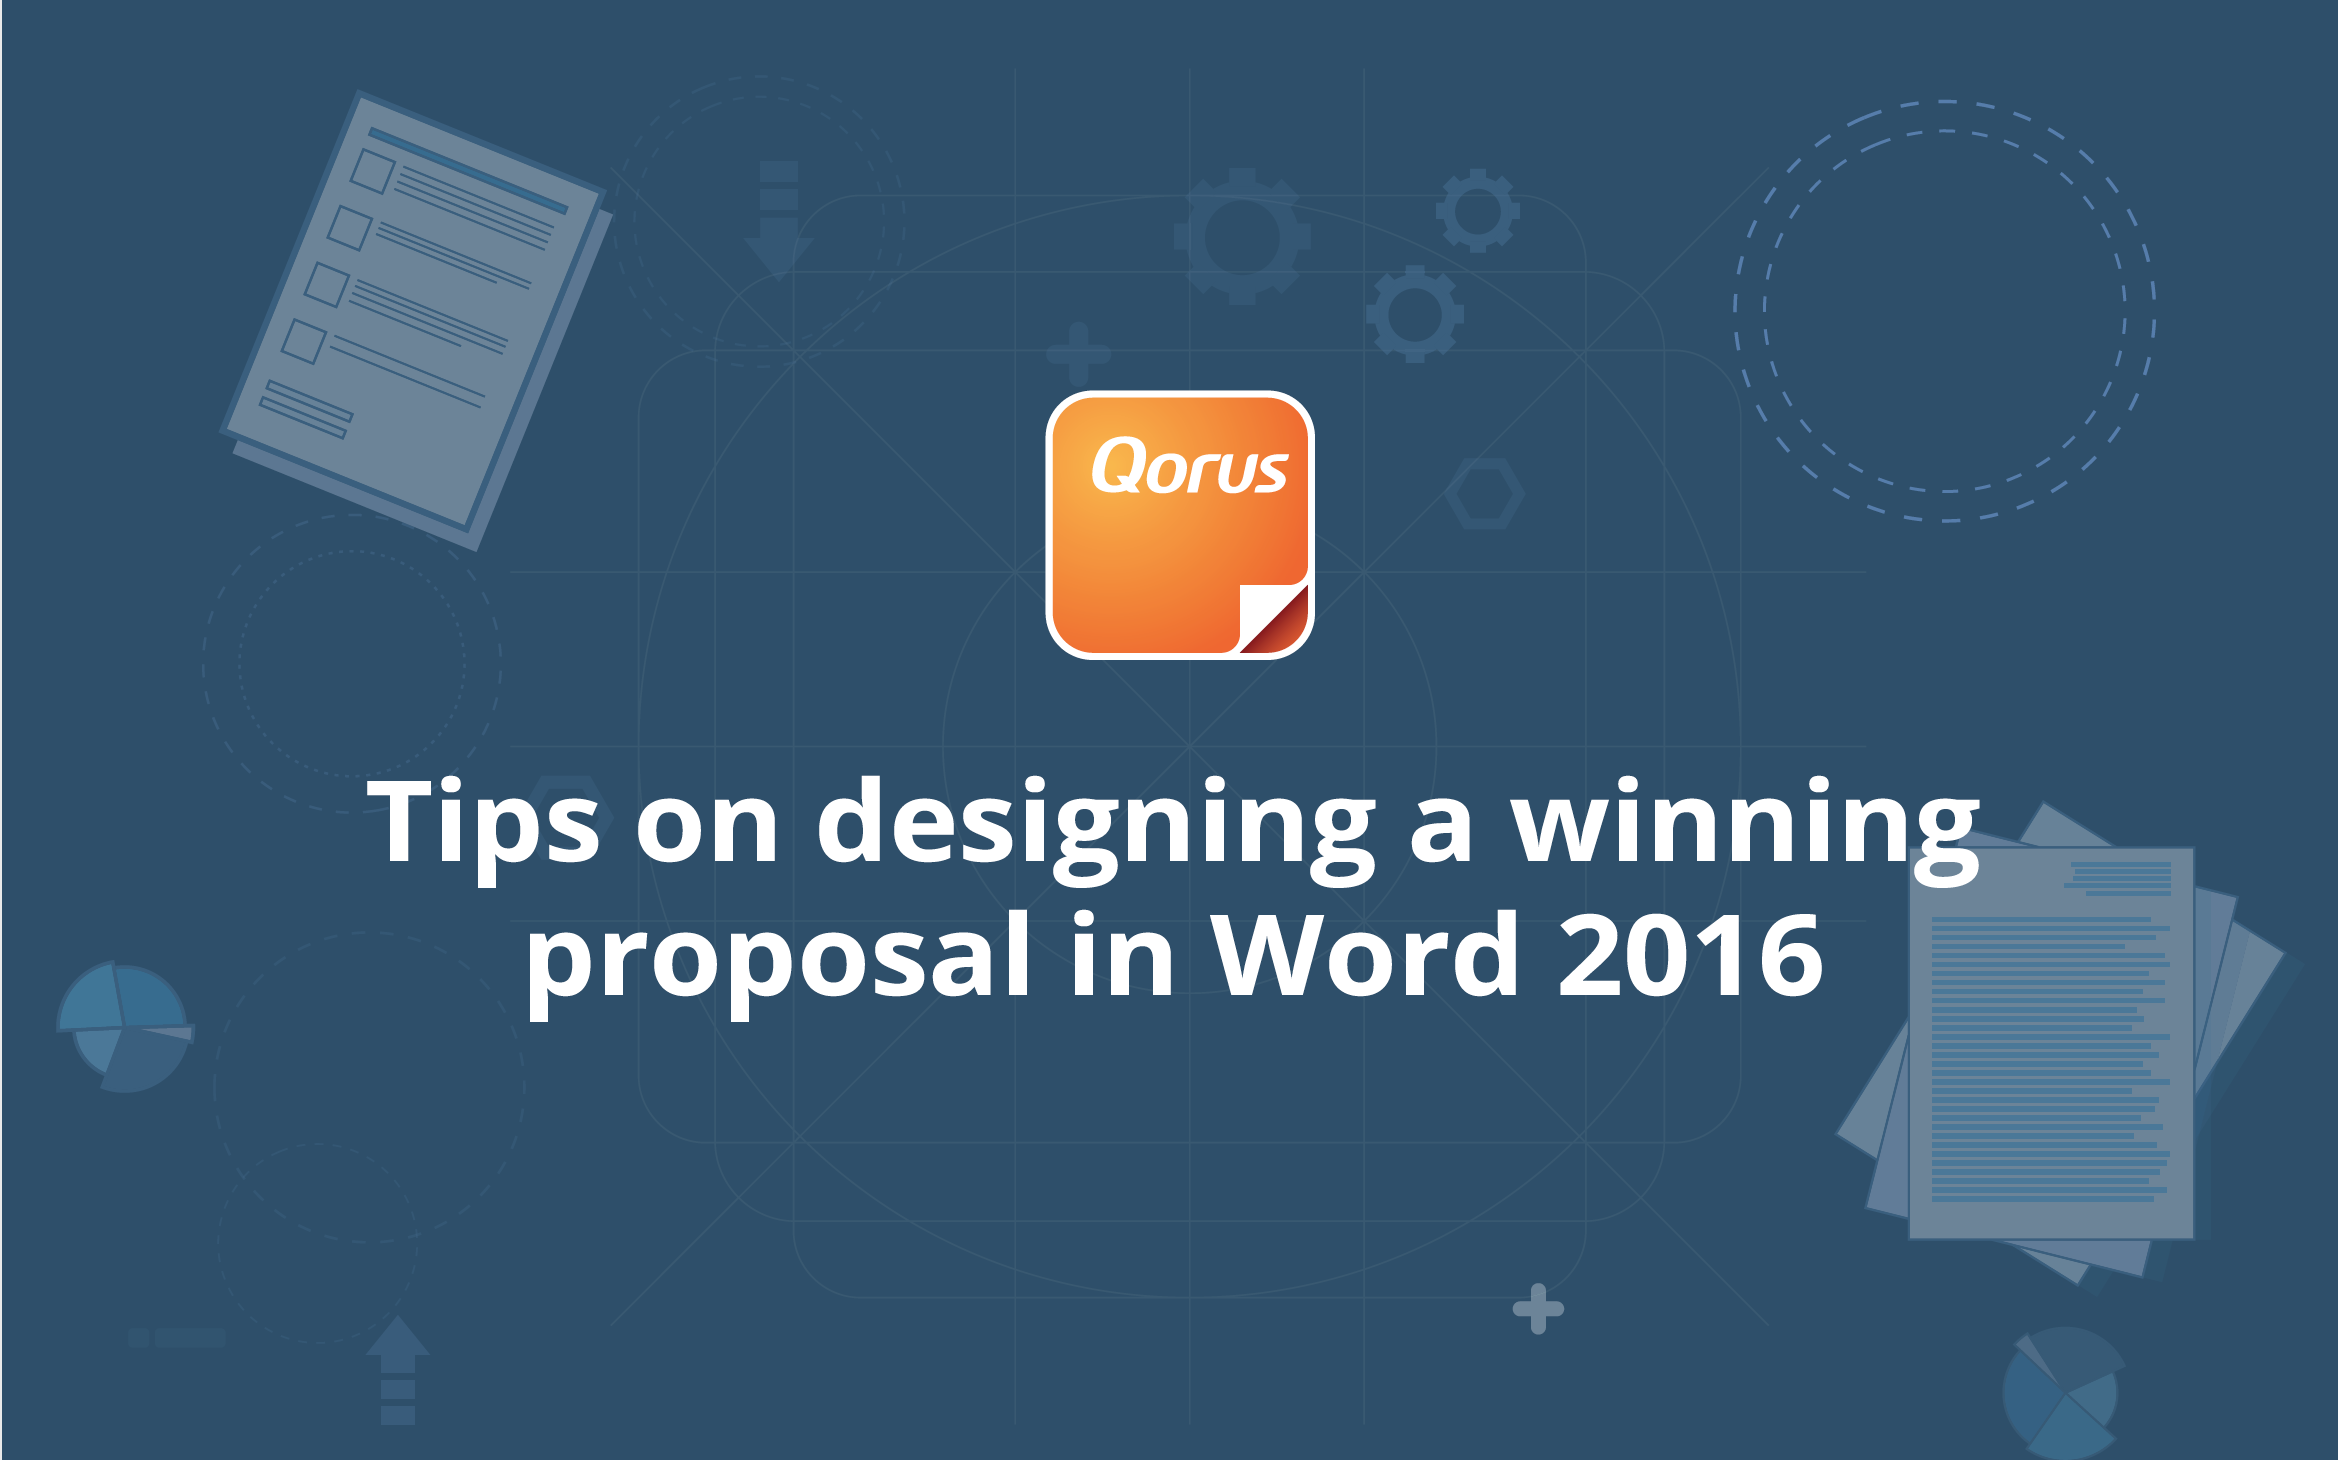 Tips on designing a winning proposal in Word 2016